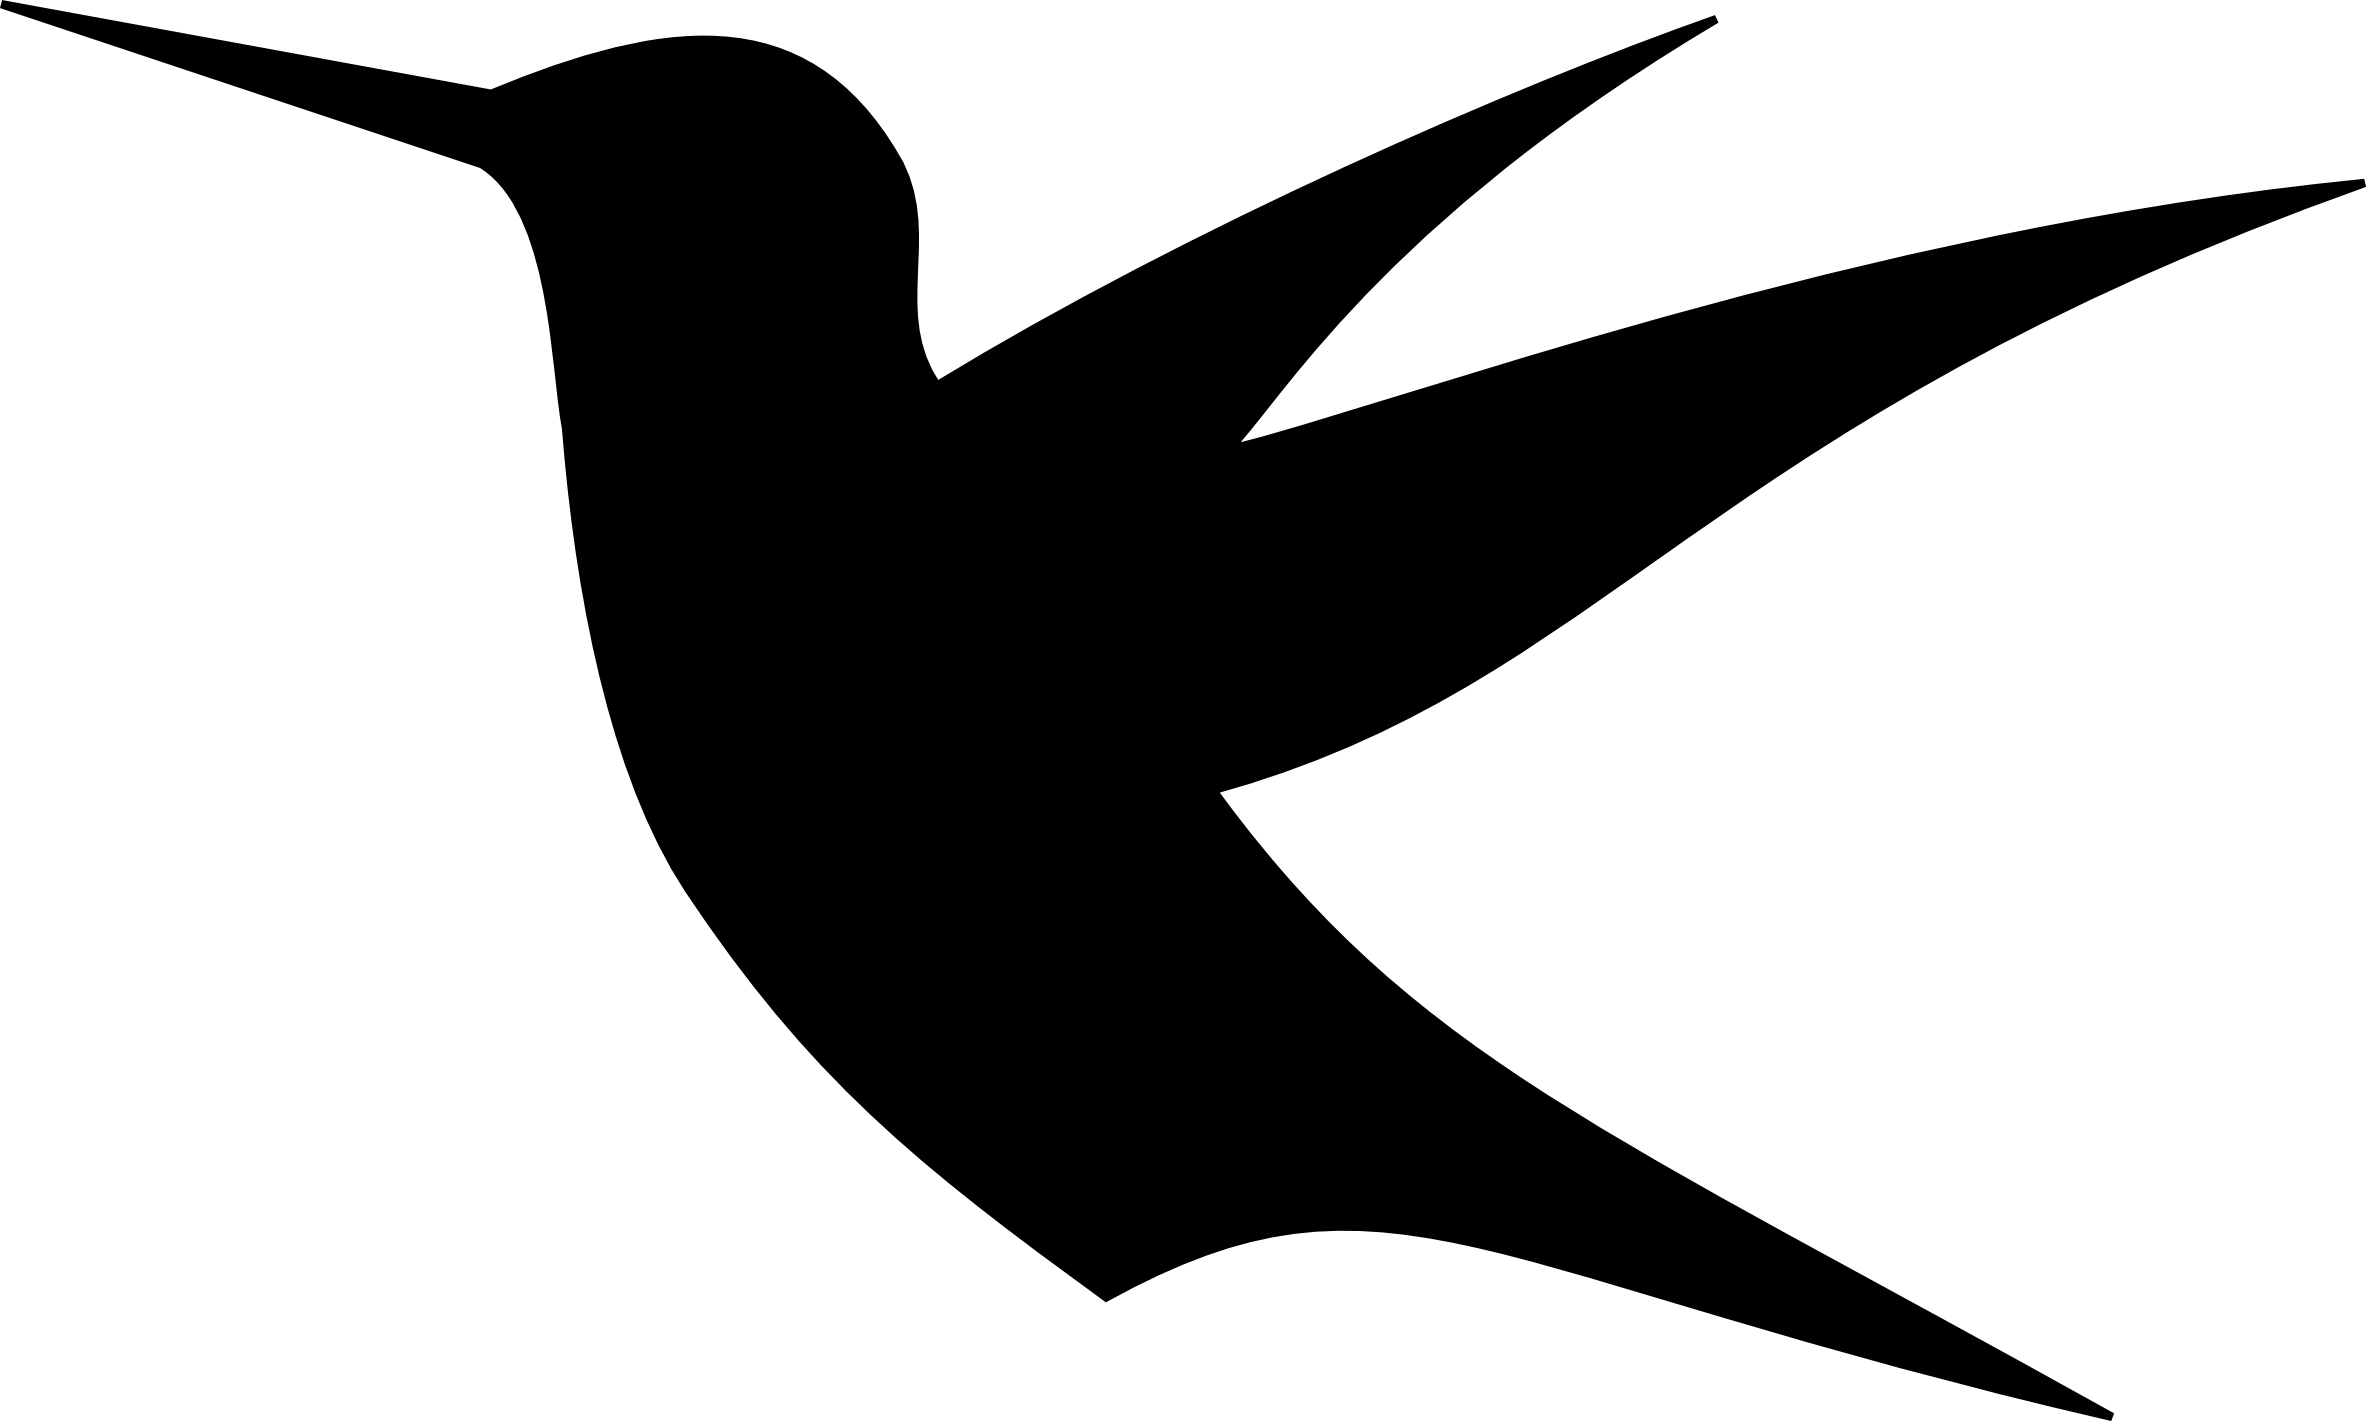 svg stock How To Draw A Bird Silhouette at GetDrawings